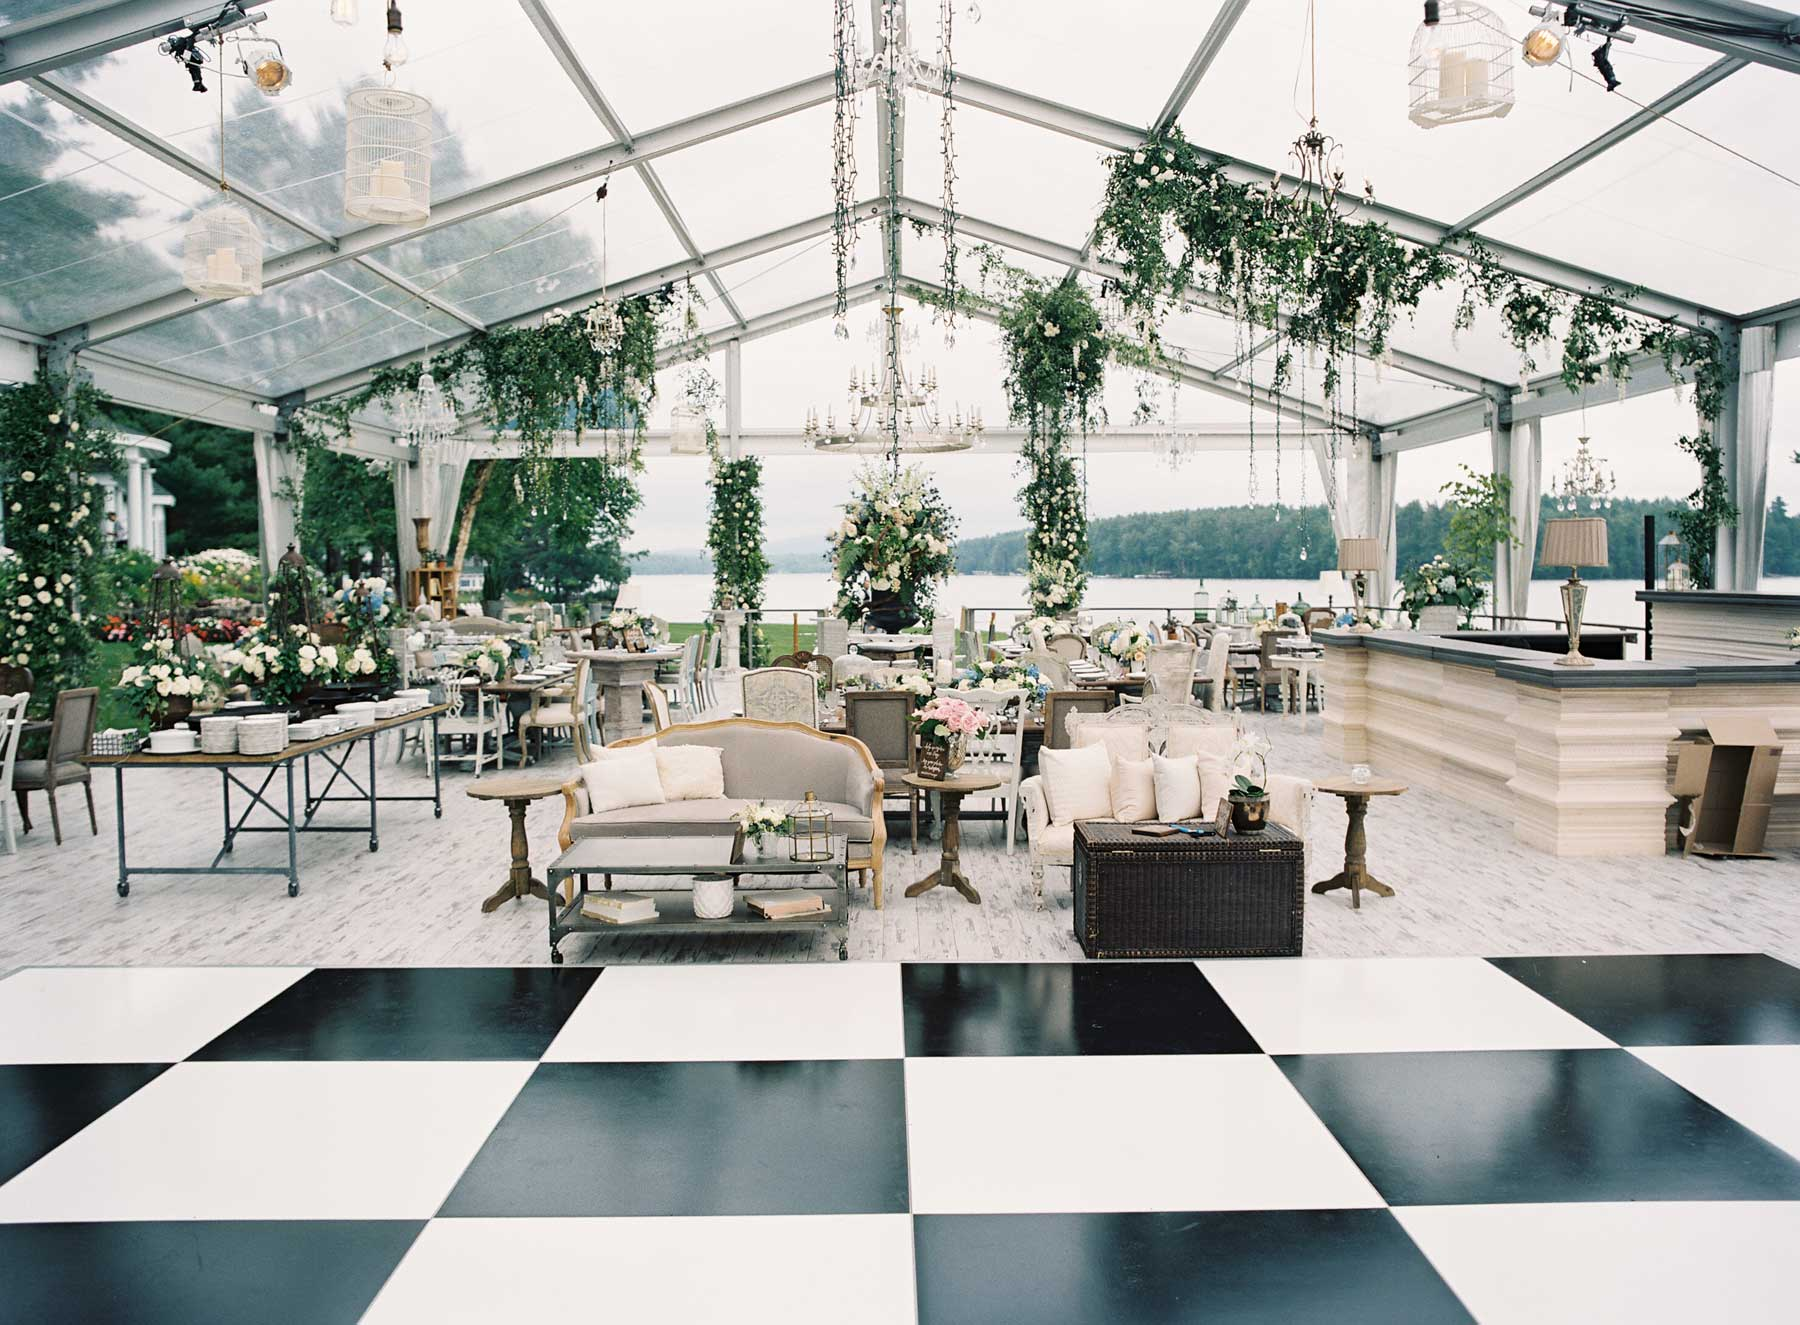 Wedding Ideas & Trends: Clear-Top Wedding Tents - Inside Weddings